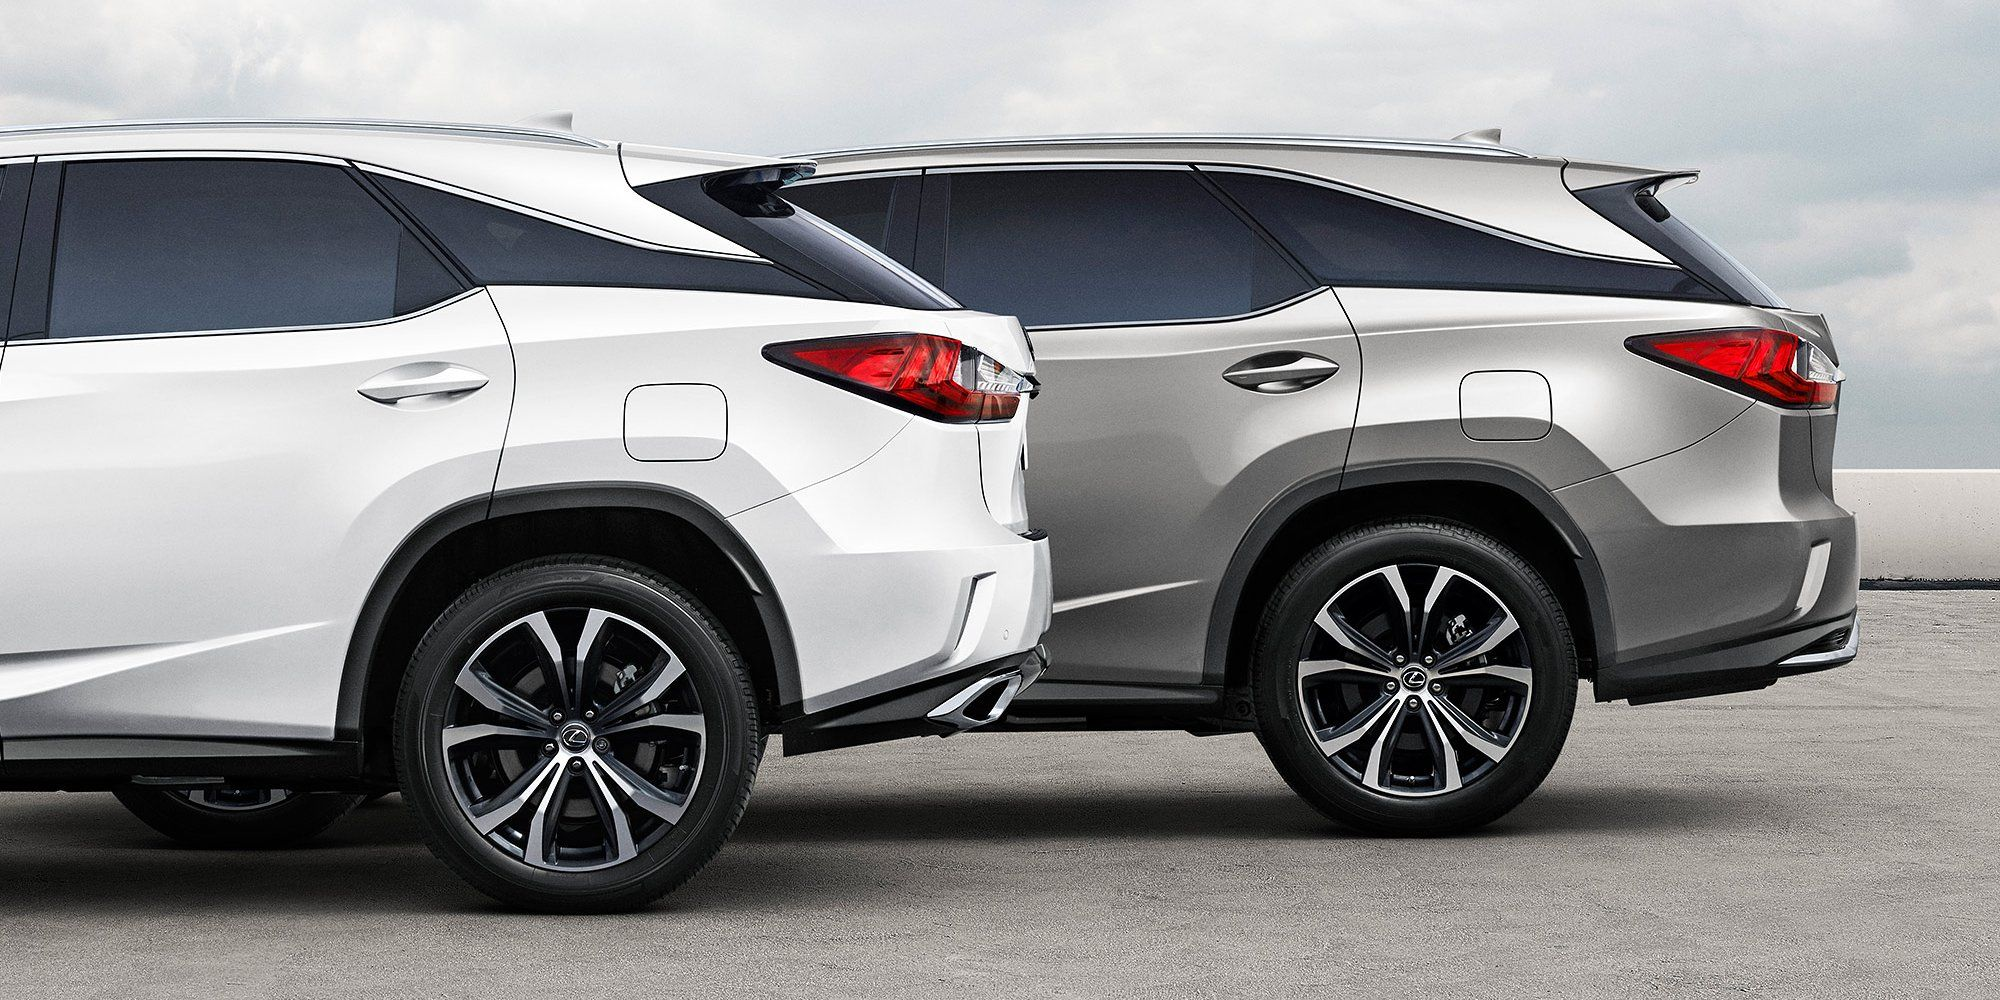 Lexus Goes Big With An Extra Large Rx350l And Rx450hl Crossover Suv Business Insider Lexus Best Suv Lexus Models